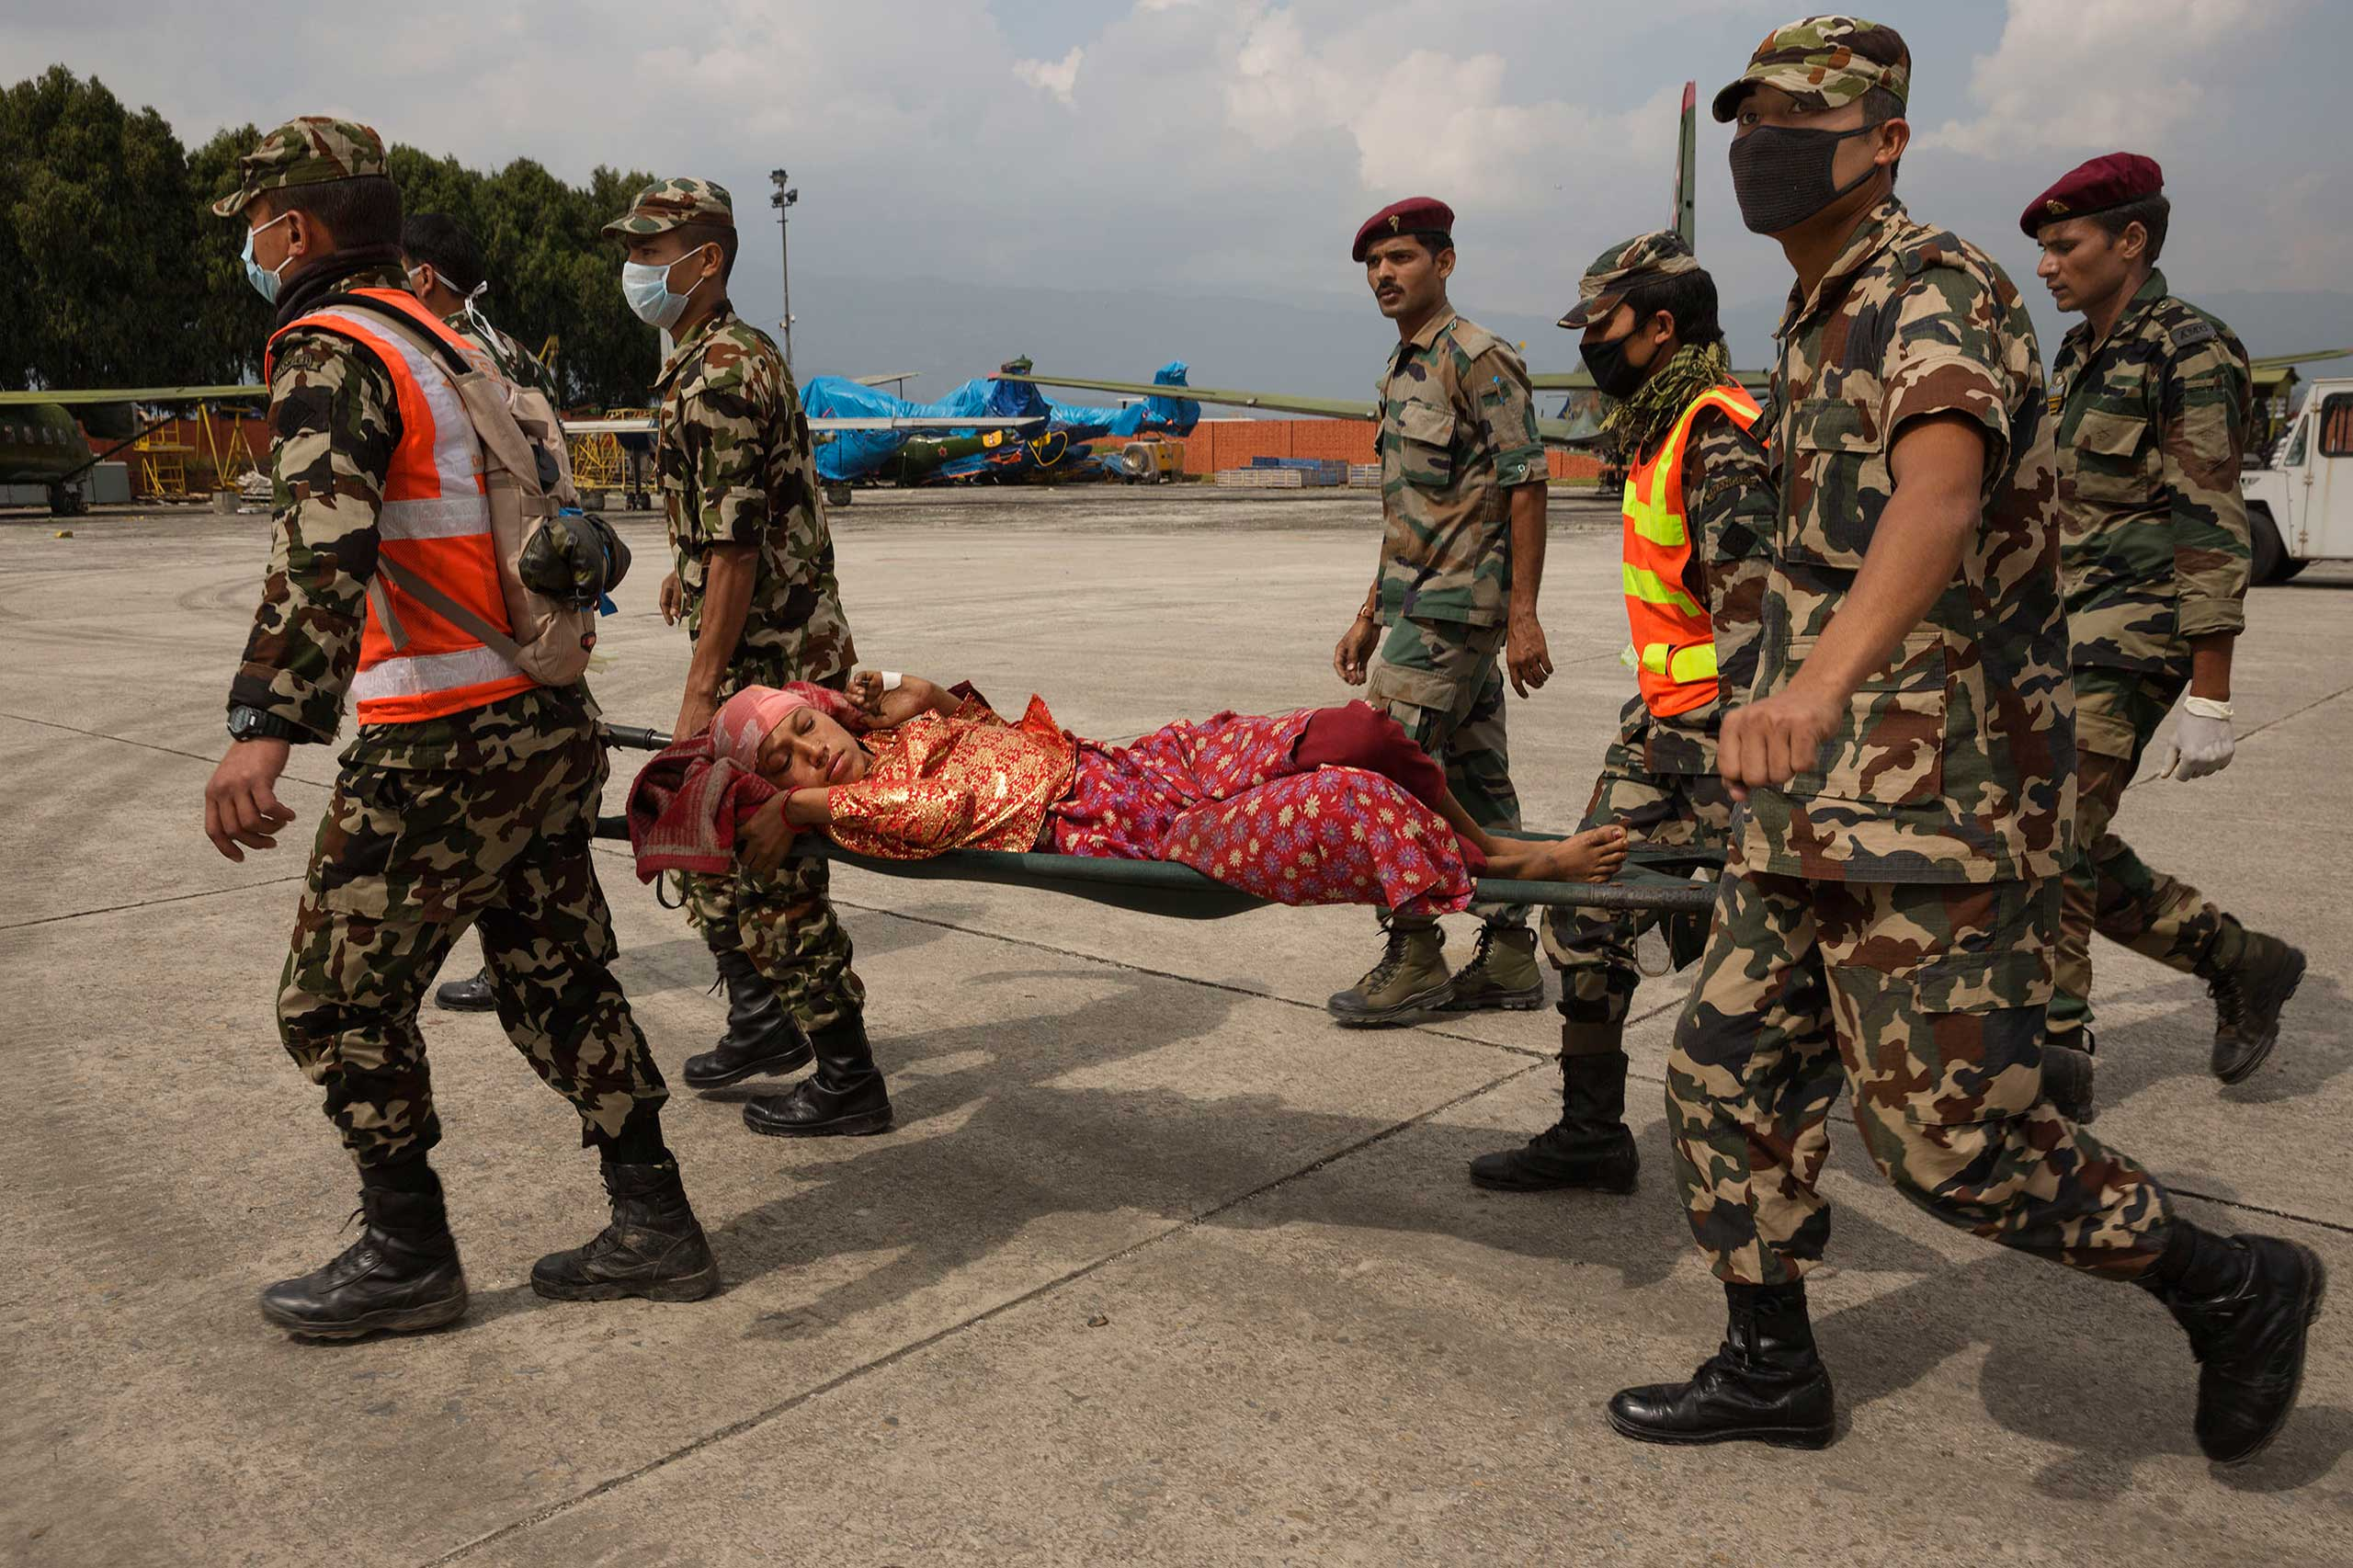 After being airlifted from a remote village to Kathmandu, an injured woman is carried to receive care, April 30, 2015.